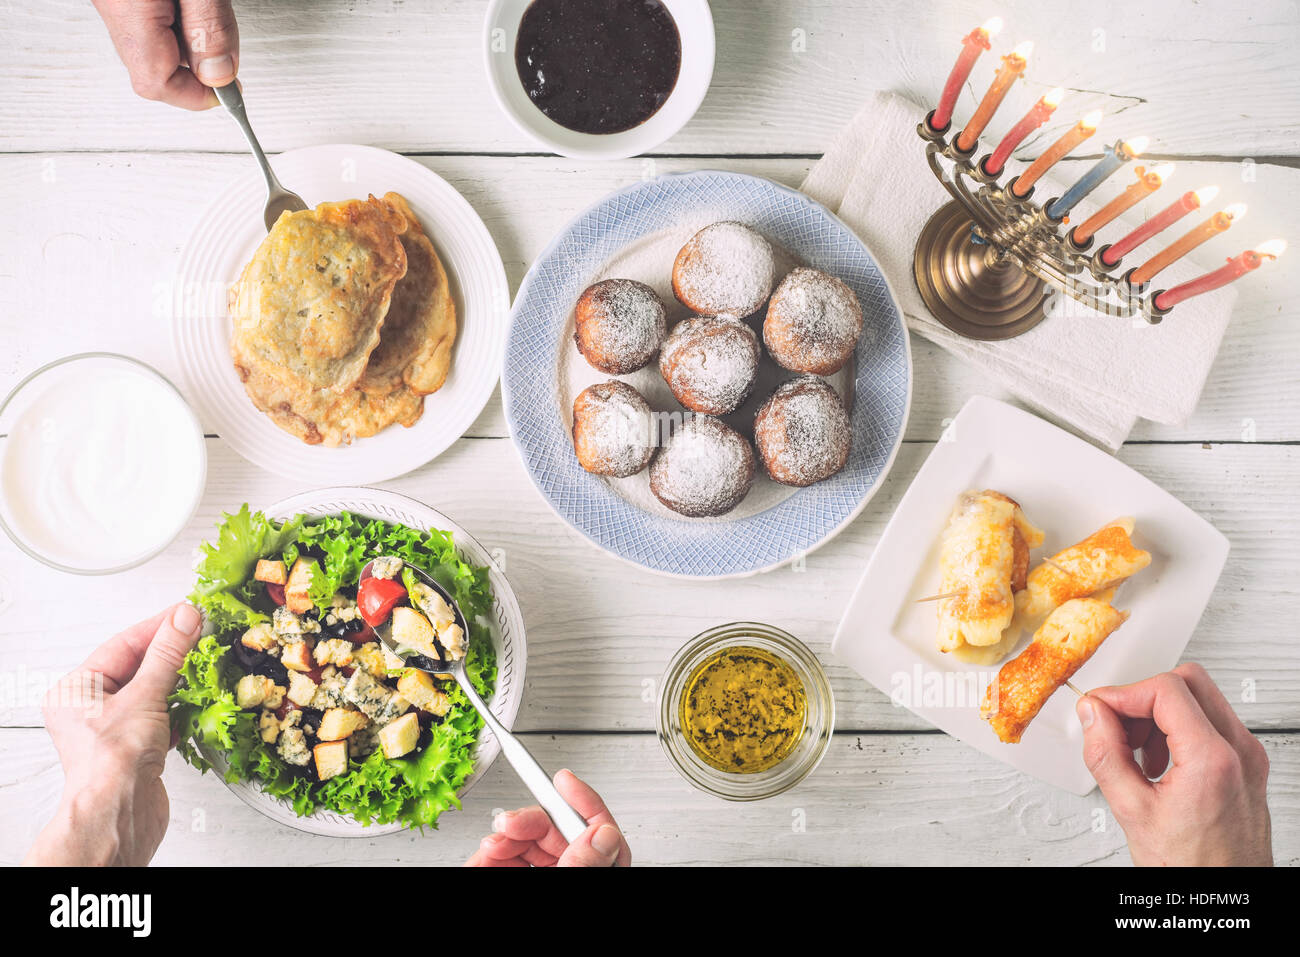 Hanukkah dinner with traditional dishes horizontal - Stock Image